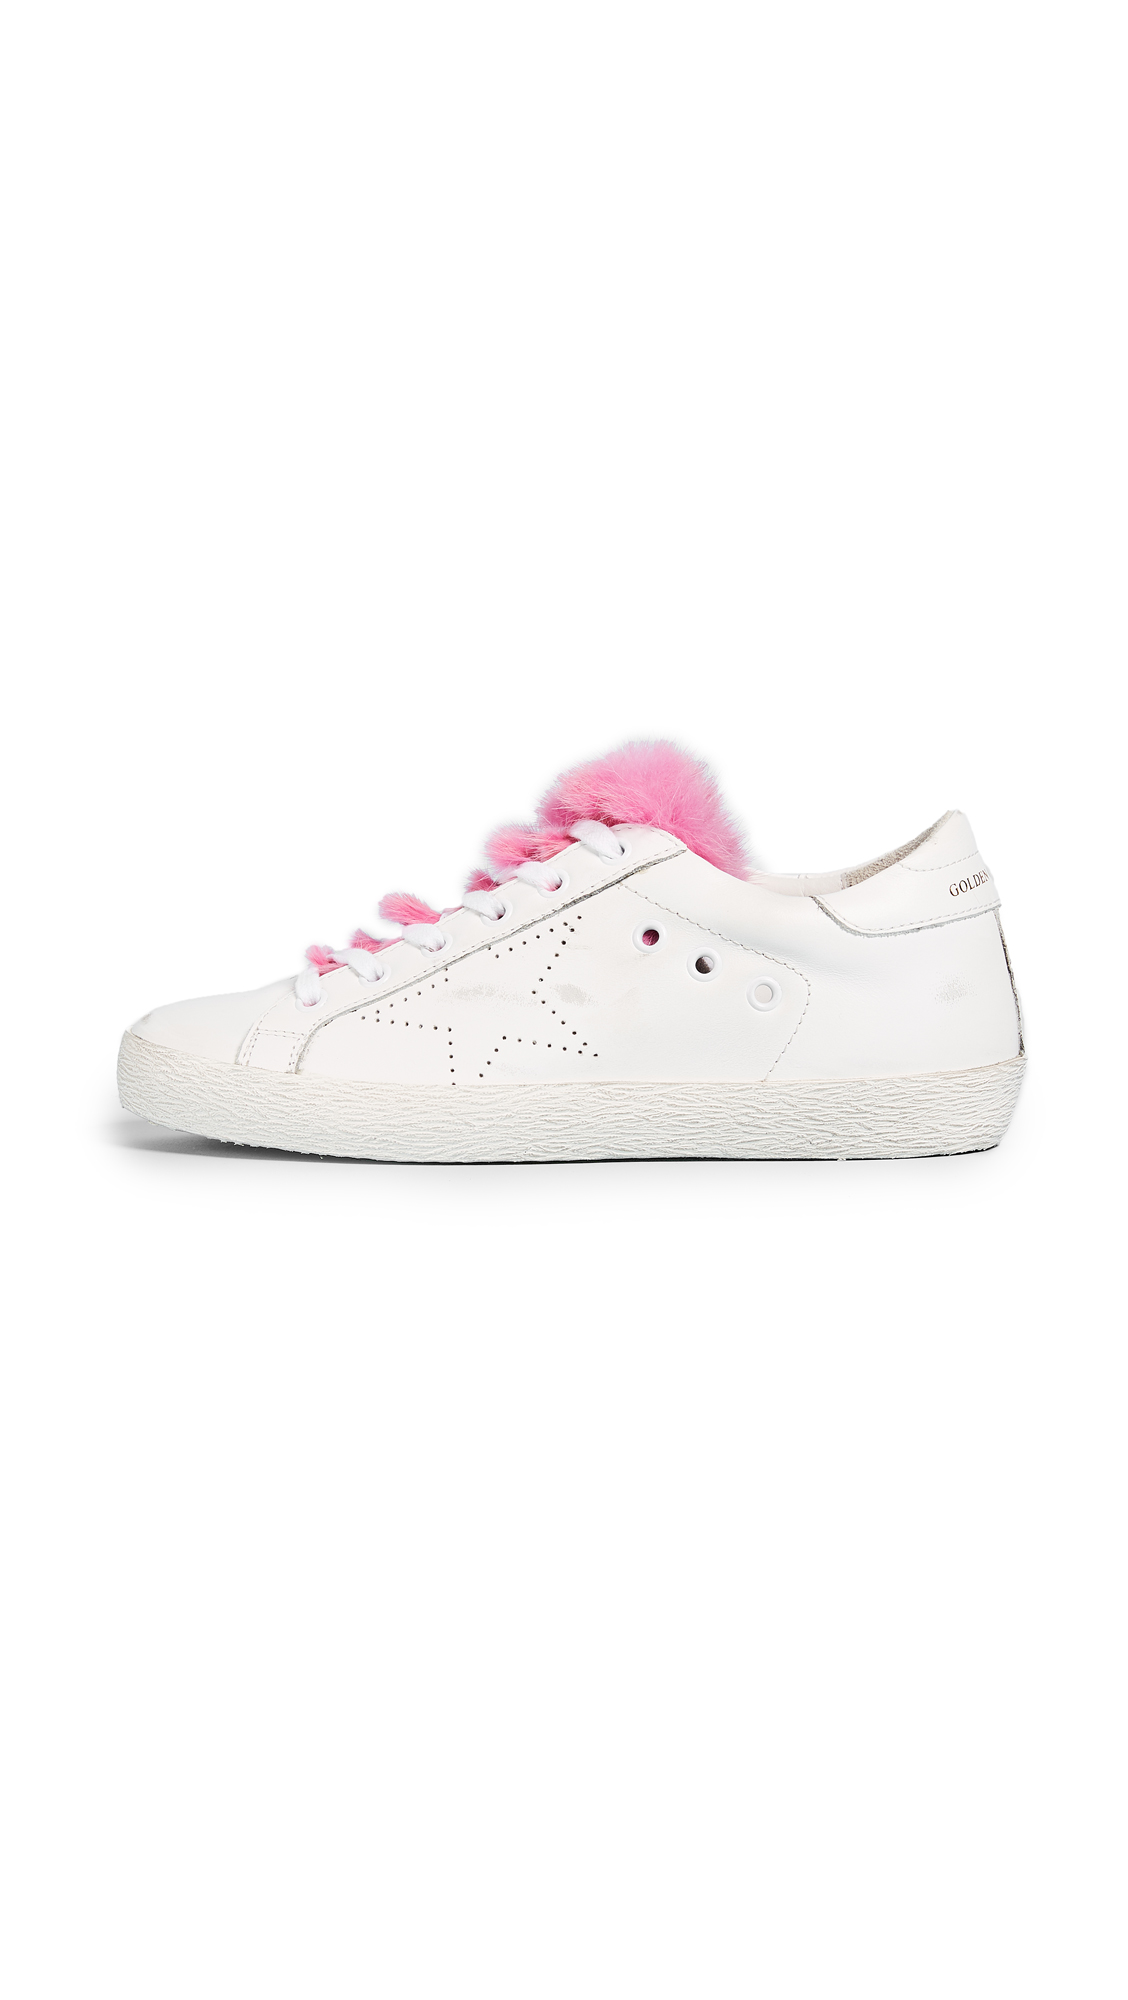 Golden Goose Superstar Sneakers - White/Fuchsia